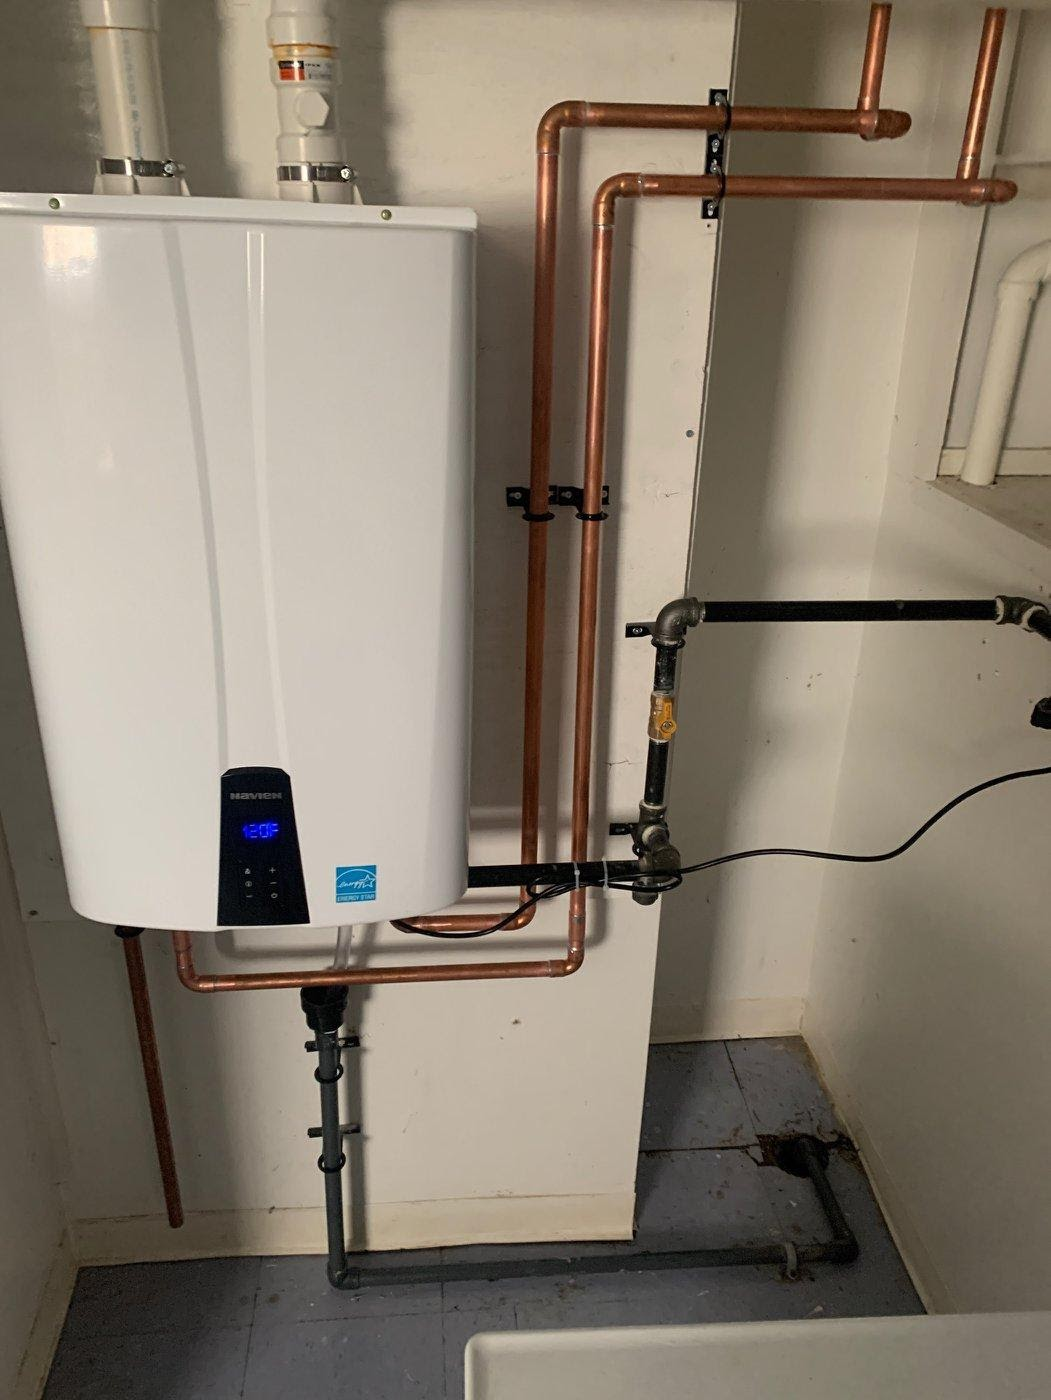 Hot Water Tanks and Tankless Heaters in Kingston Homes